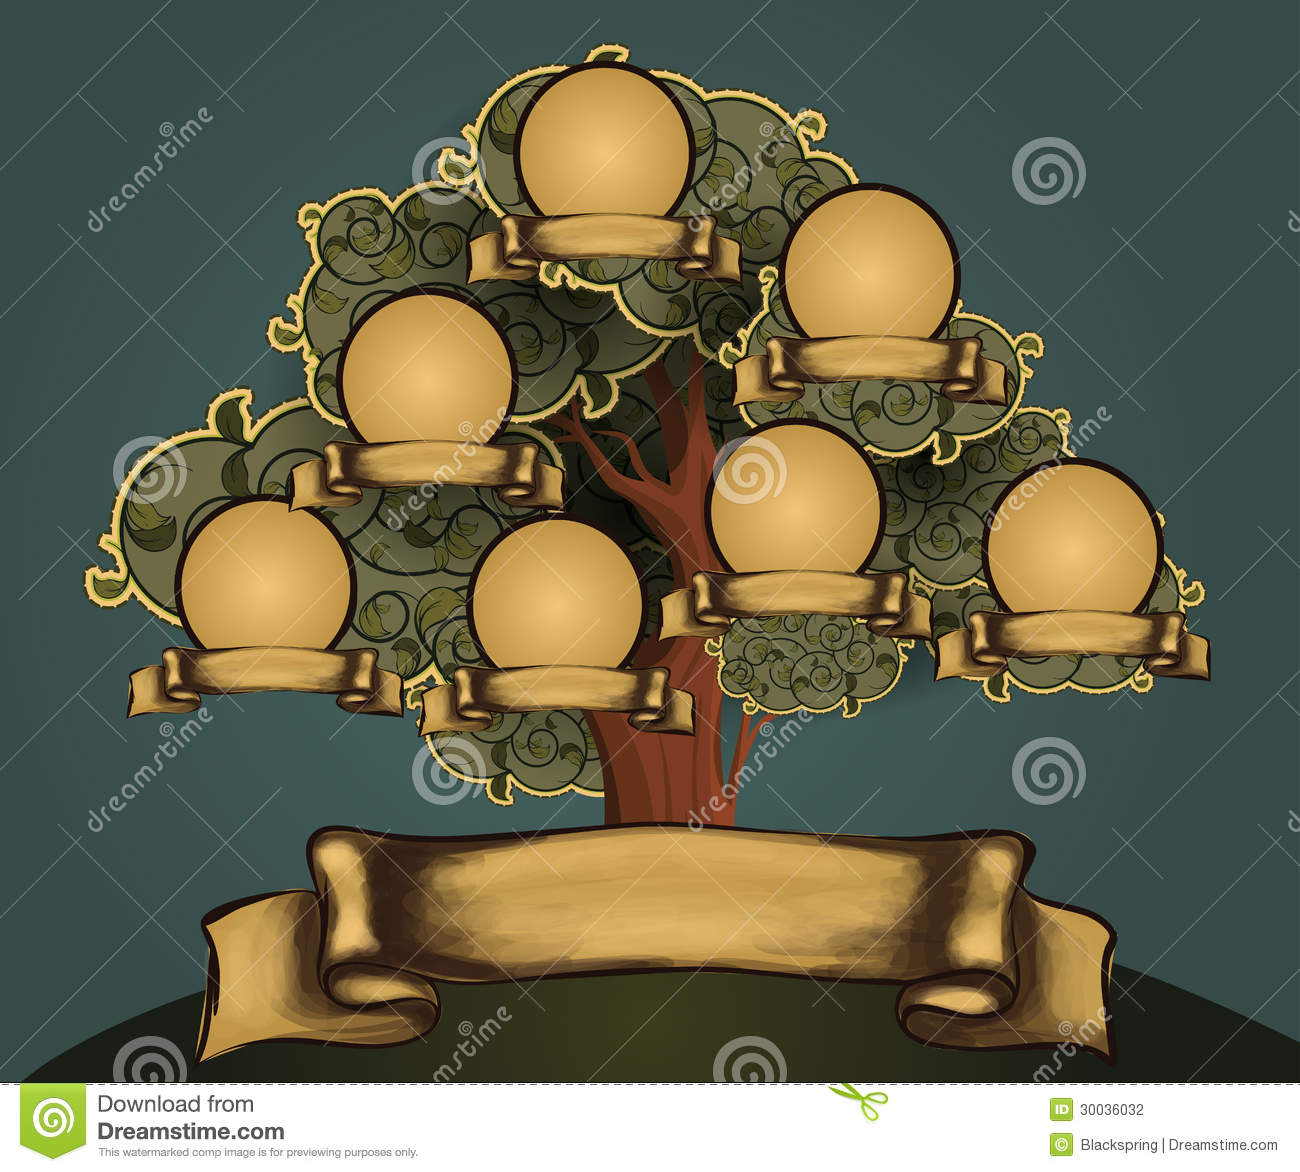 Superb Vector Family Tree With Frames And Leafs Royalty Free Stock Image Largest Home Design Picture Inspirations Pitcheantrous